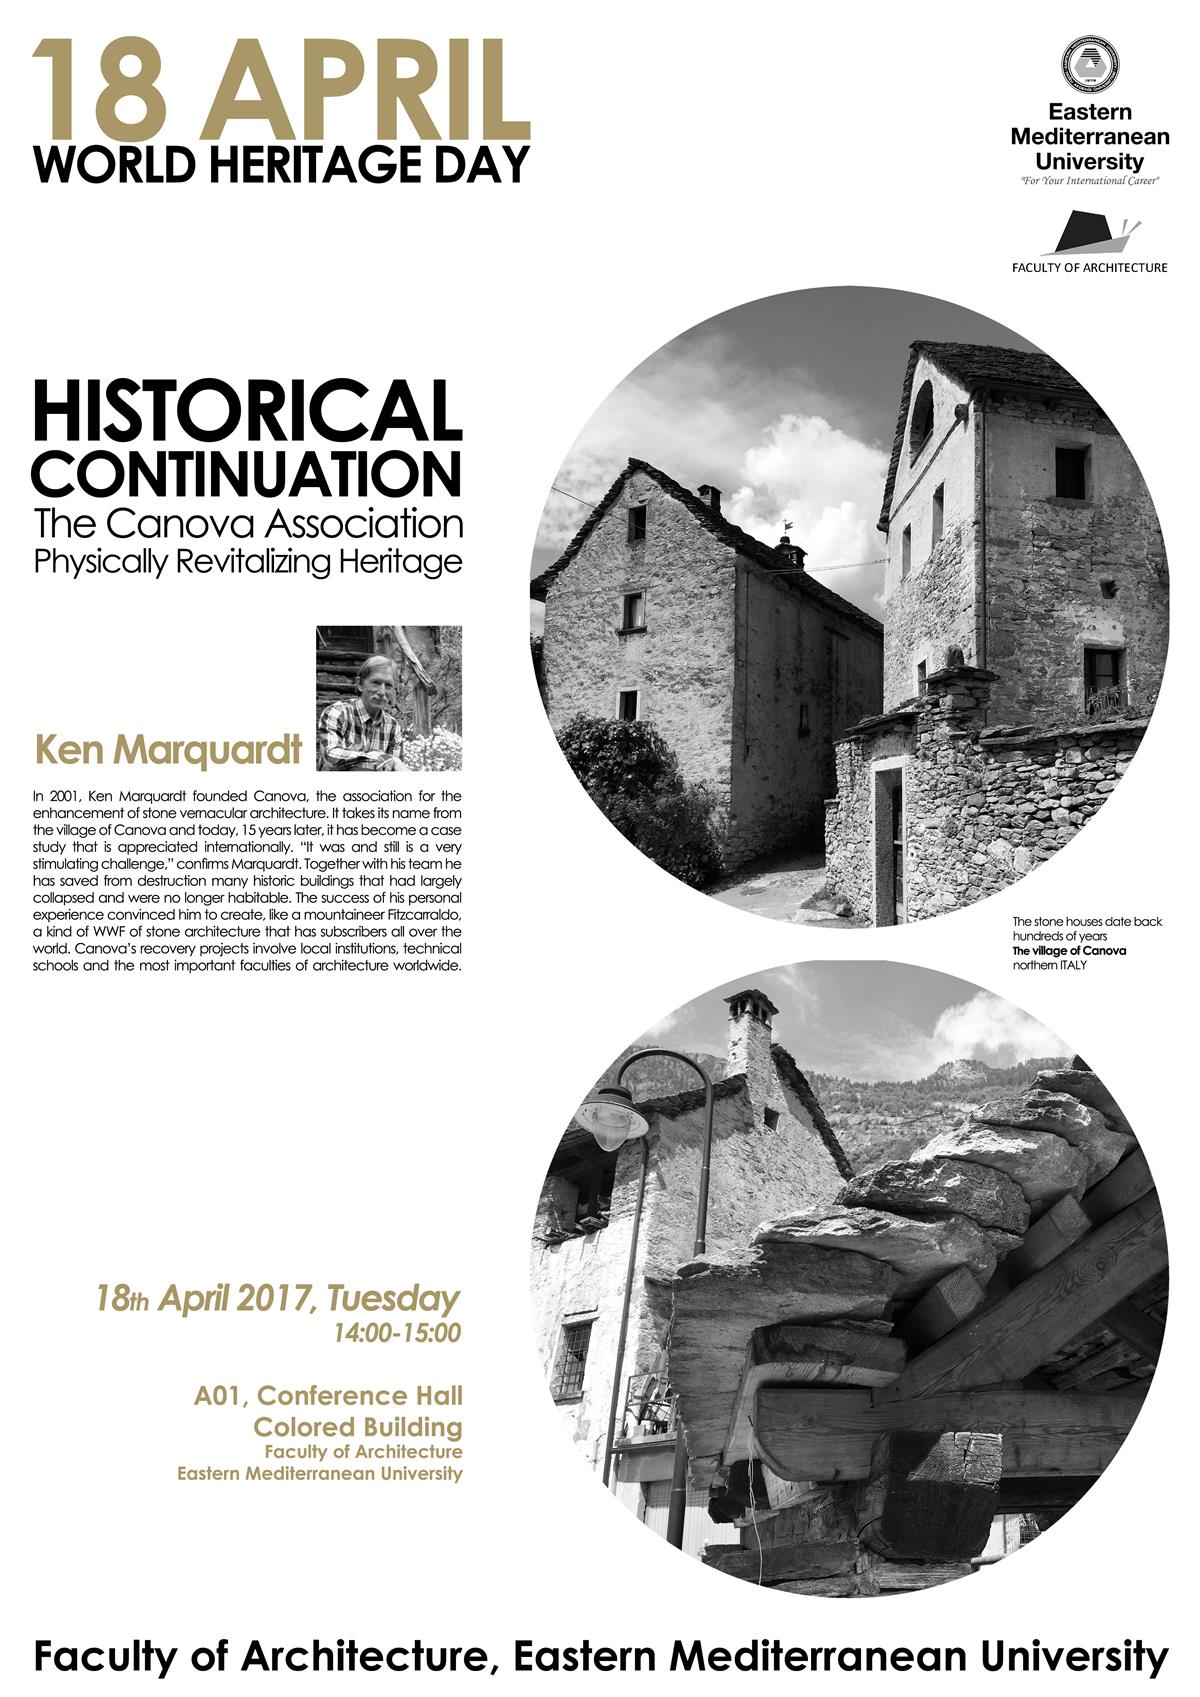 """Historical Continuation,The Canova Association: Physically Revitalizing Heritage"" Ken Marquardt"